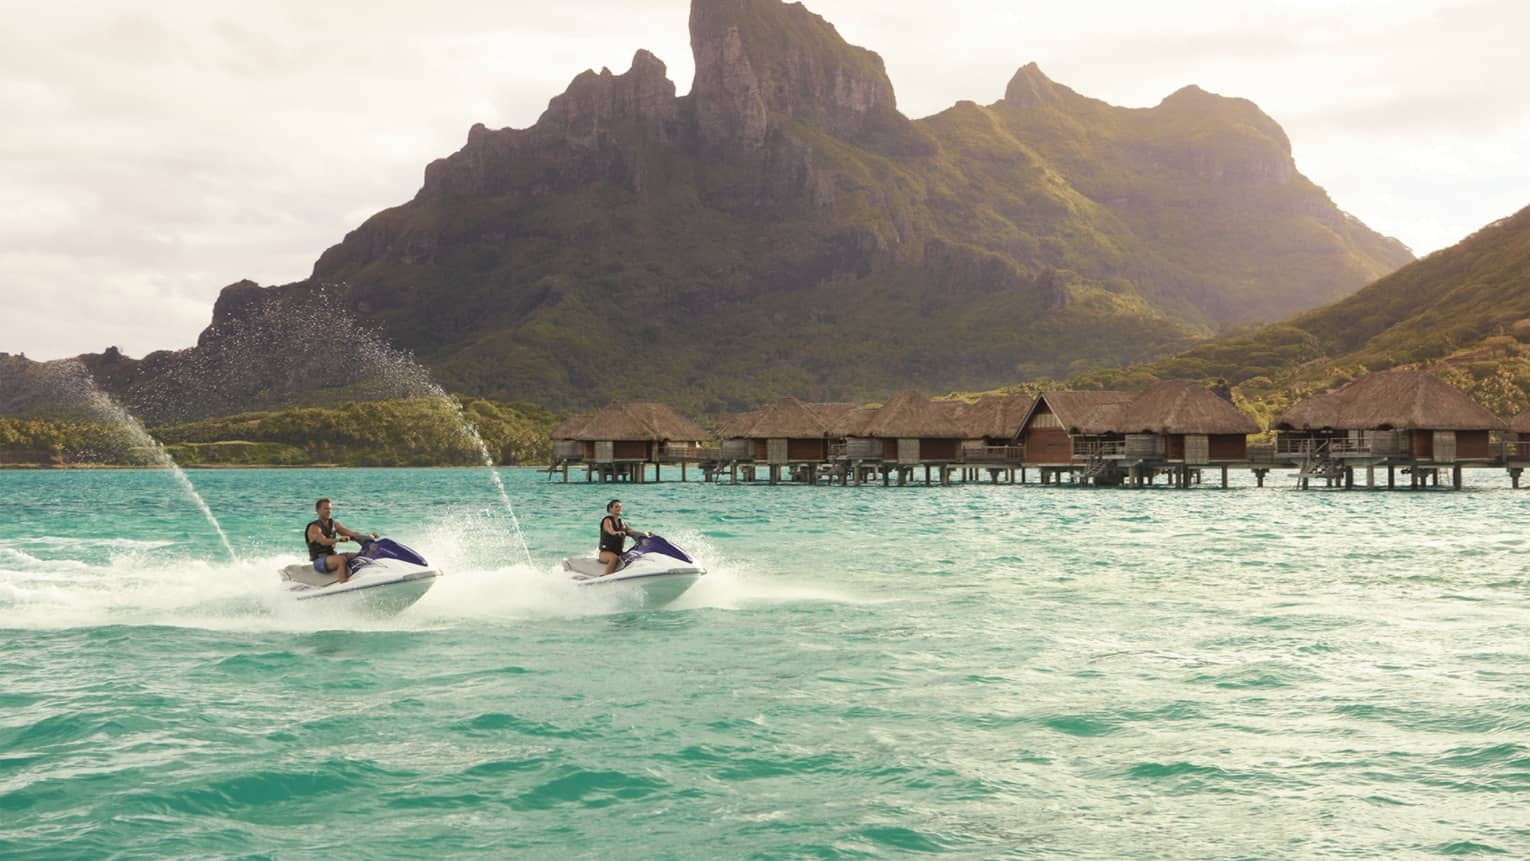 Two jet skis ride along lagoon past row of overwater bungalows, Bora Bora mountain